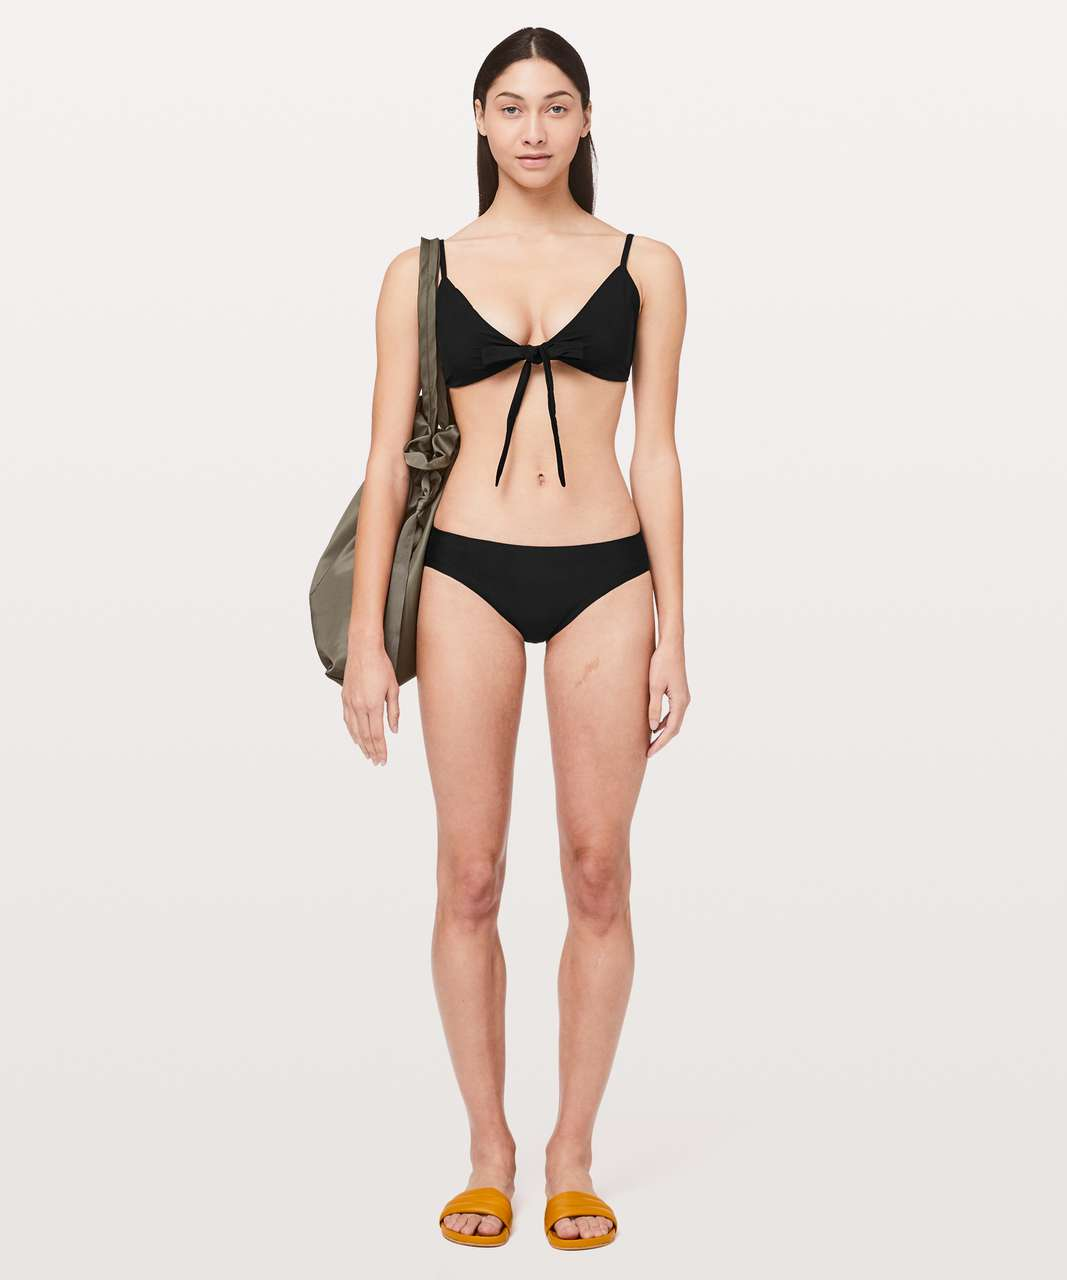 Lululemon Tied To Tide Swim Top - Black